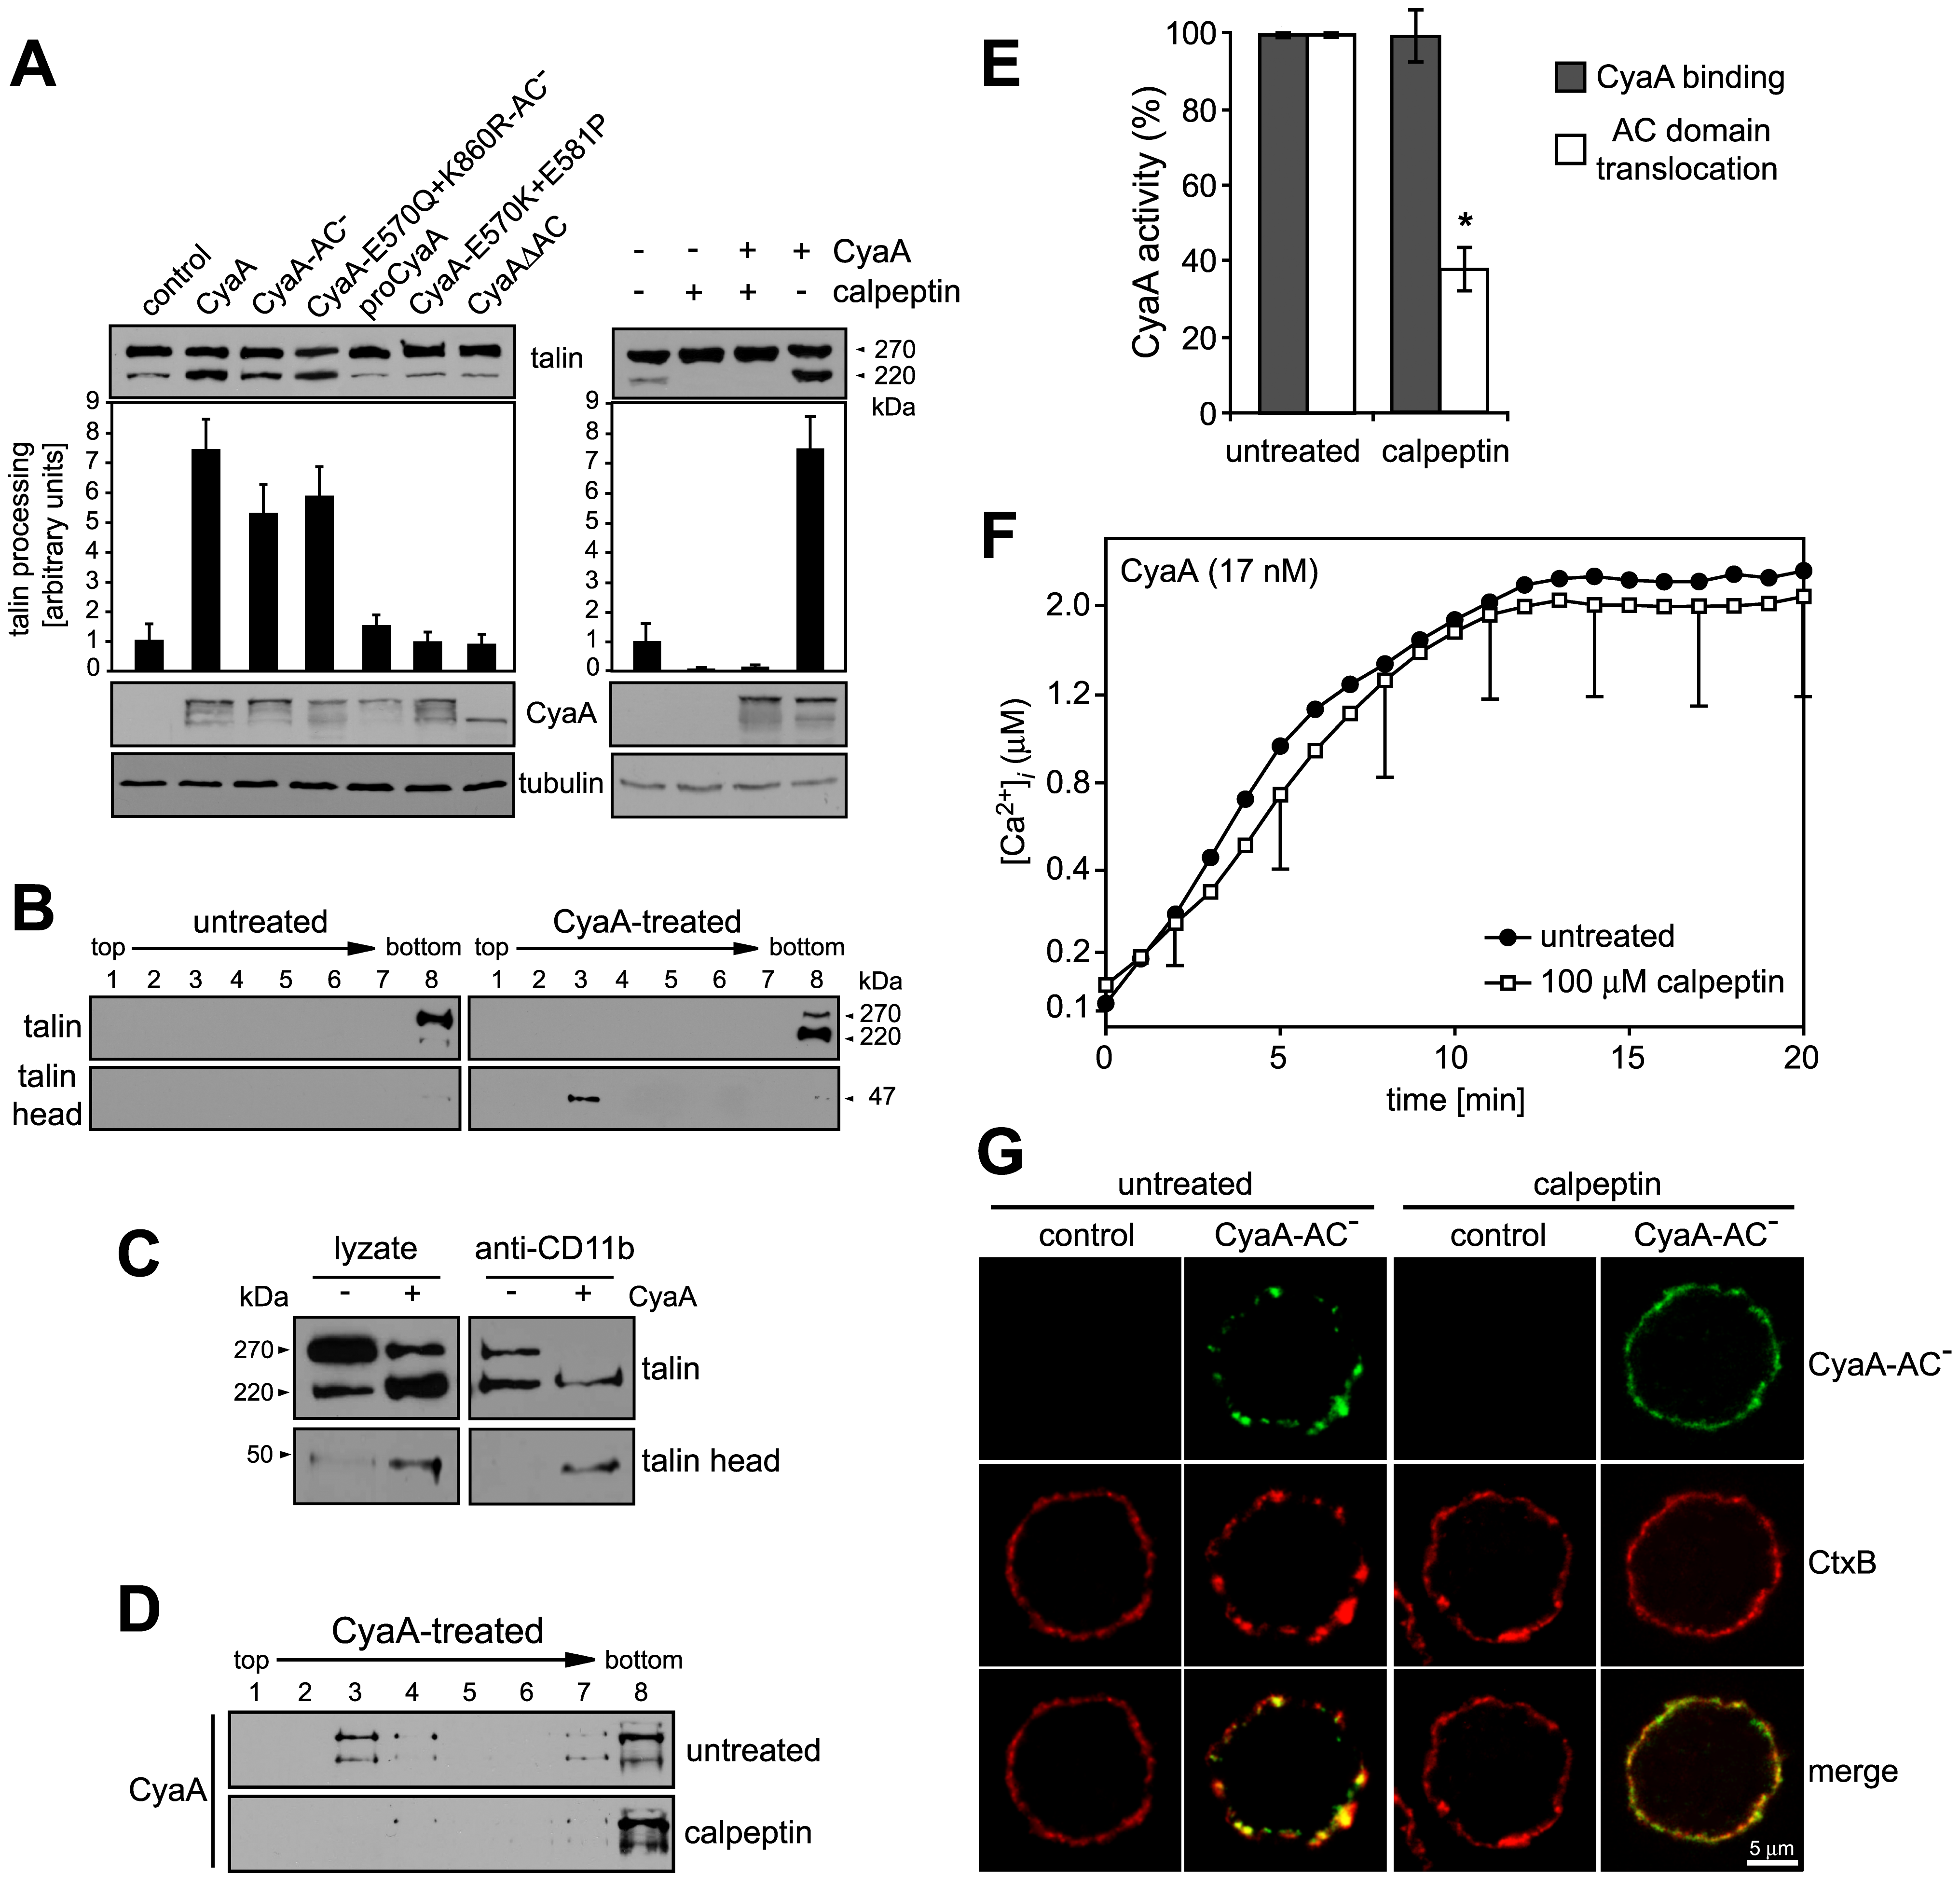 Mobilization of CyaA into lipid rafts depends on talin cleavage by calpain.